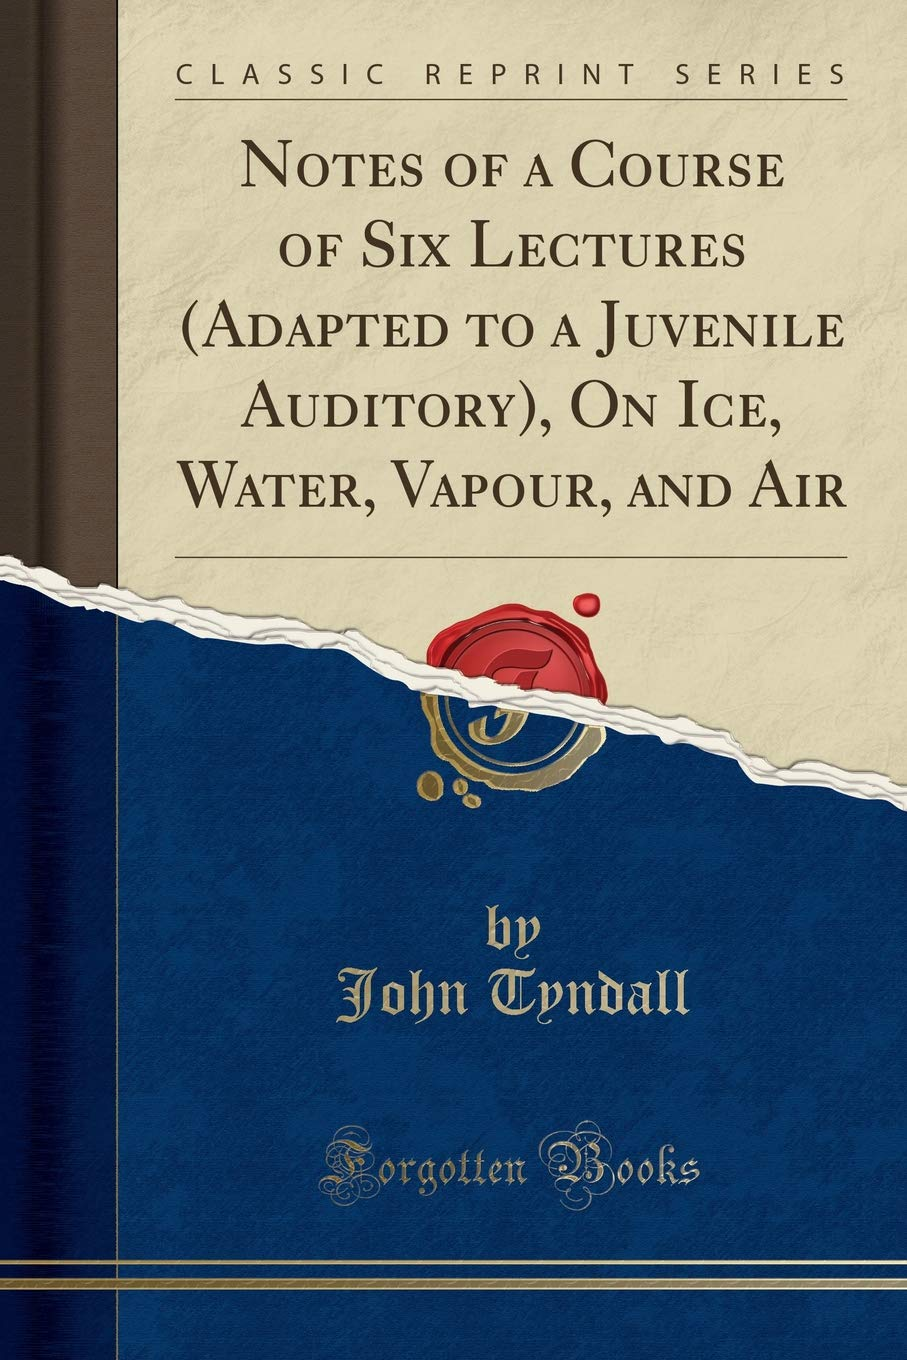 Read Online Notes of a Course of Six Lectures (Adapted to a Juvenile Auditory), On Ice, Water, Vapour, and Air (Classic Reprint) PDF